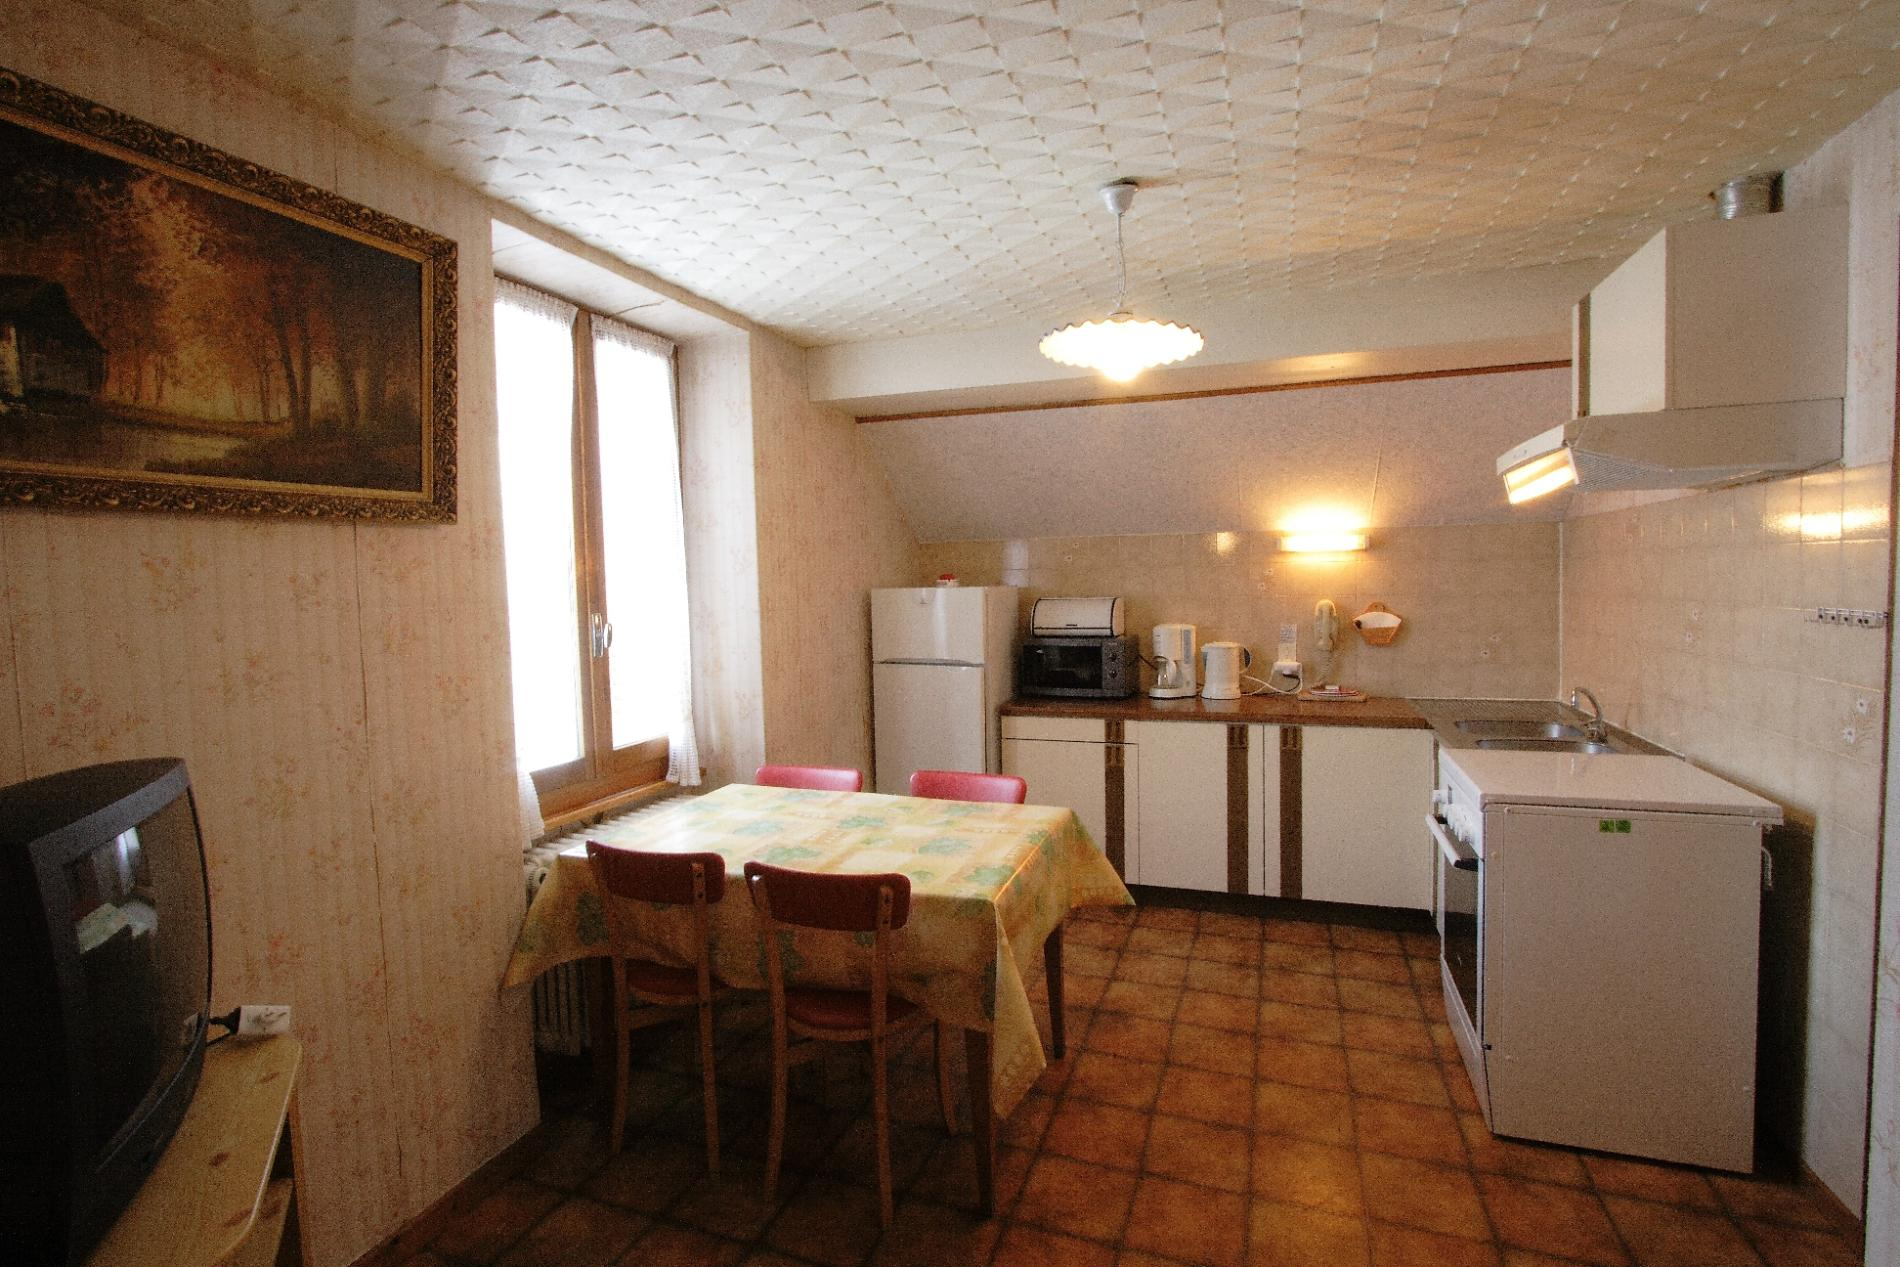 Bouton-d'Or rental apartment